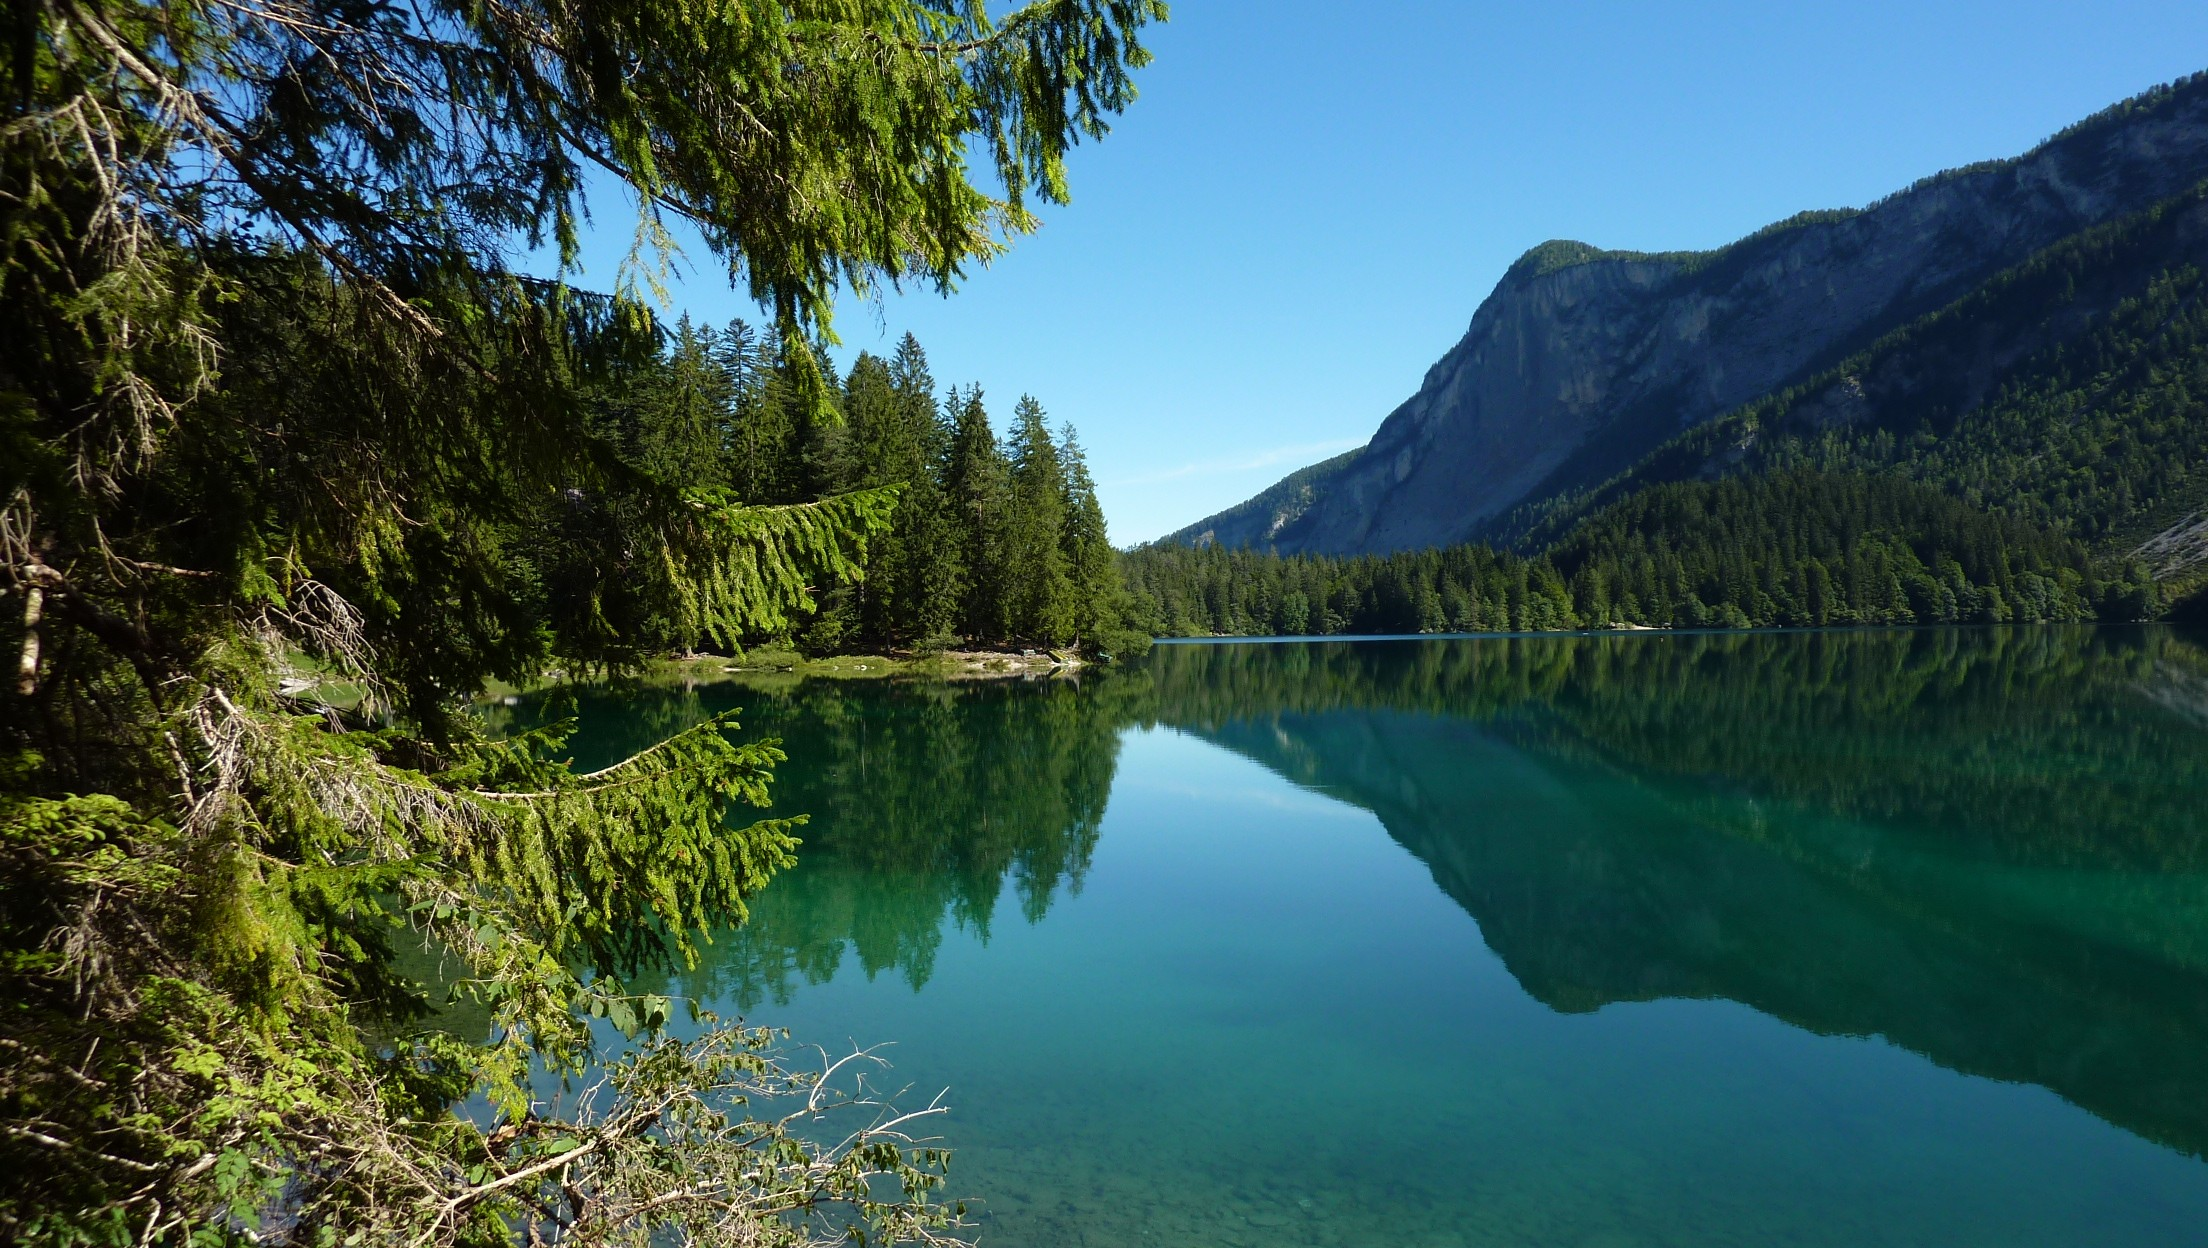 Water Mountains Landscapes Trees Lake Tovel Wallpaper